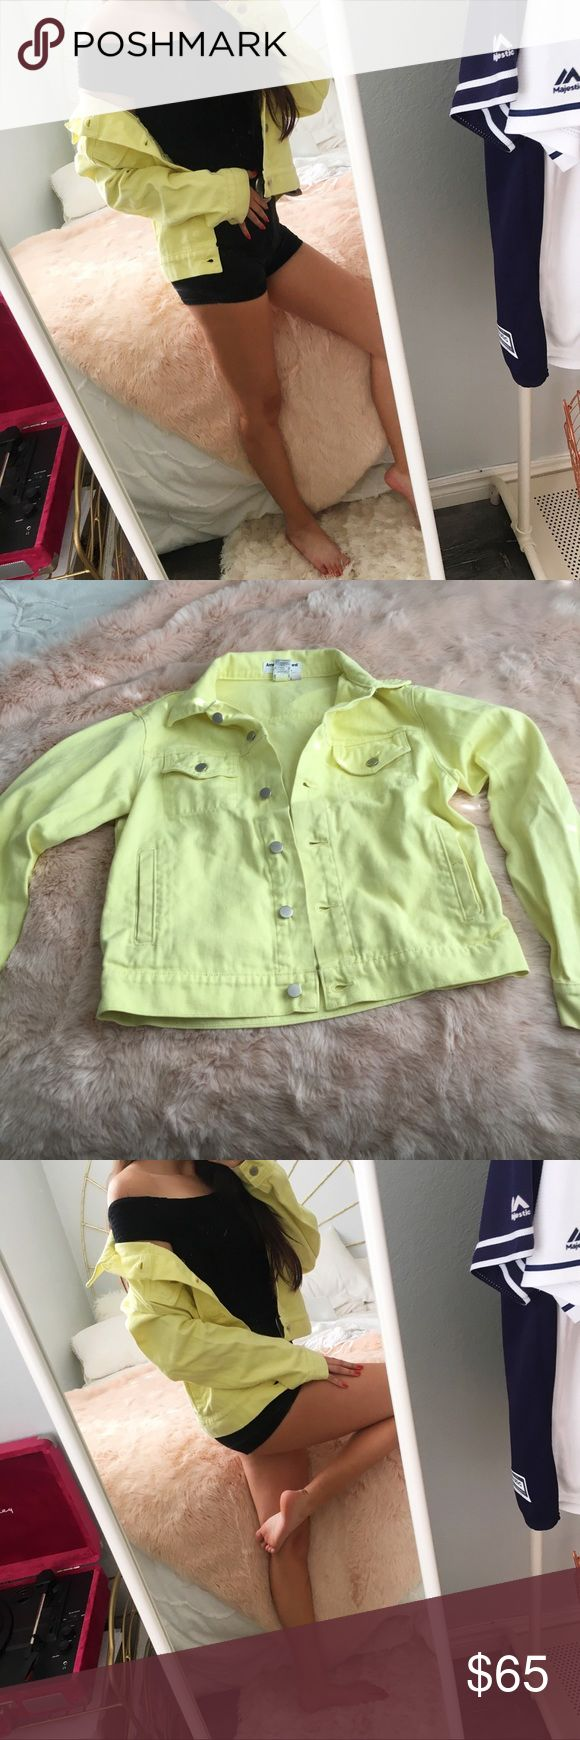 American Apparel Unisex Yellow Denim Jacket American Apparel Rare Unisex Yellow Denim Jacket Bright neon yellow jean material Size small (fits xs-medium depending on how oversized you want the look) Retail $125 (sold out/no longer avaliable)  In good condition, coloration flaw shown in photo (I bought from a resale app so it came to me that way) And 1-2 tiny marks on the jacket not noticeable when worn  I've seen this sell around 90 when NWOT Not avaliable (as far as I can tell) anywhere…